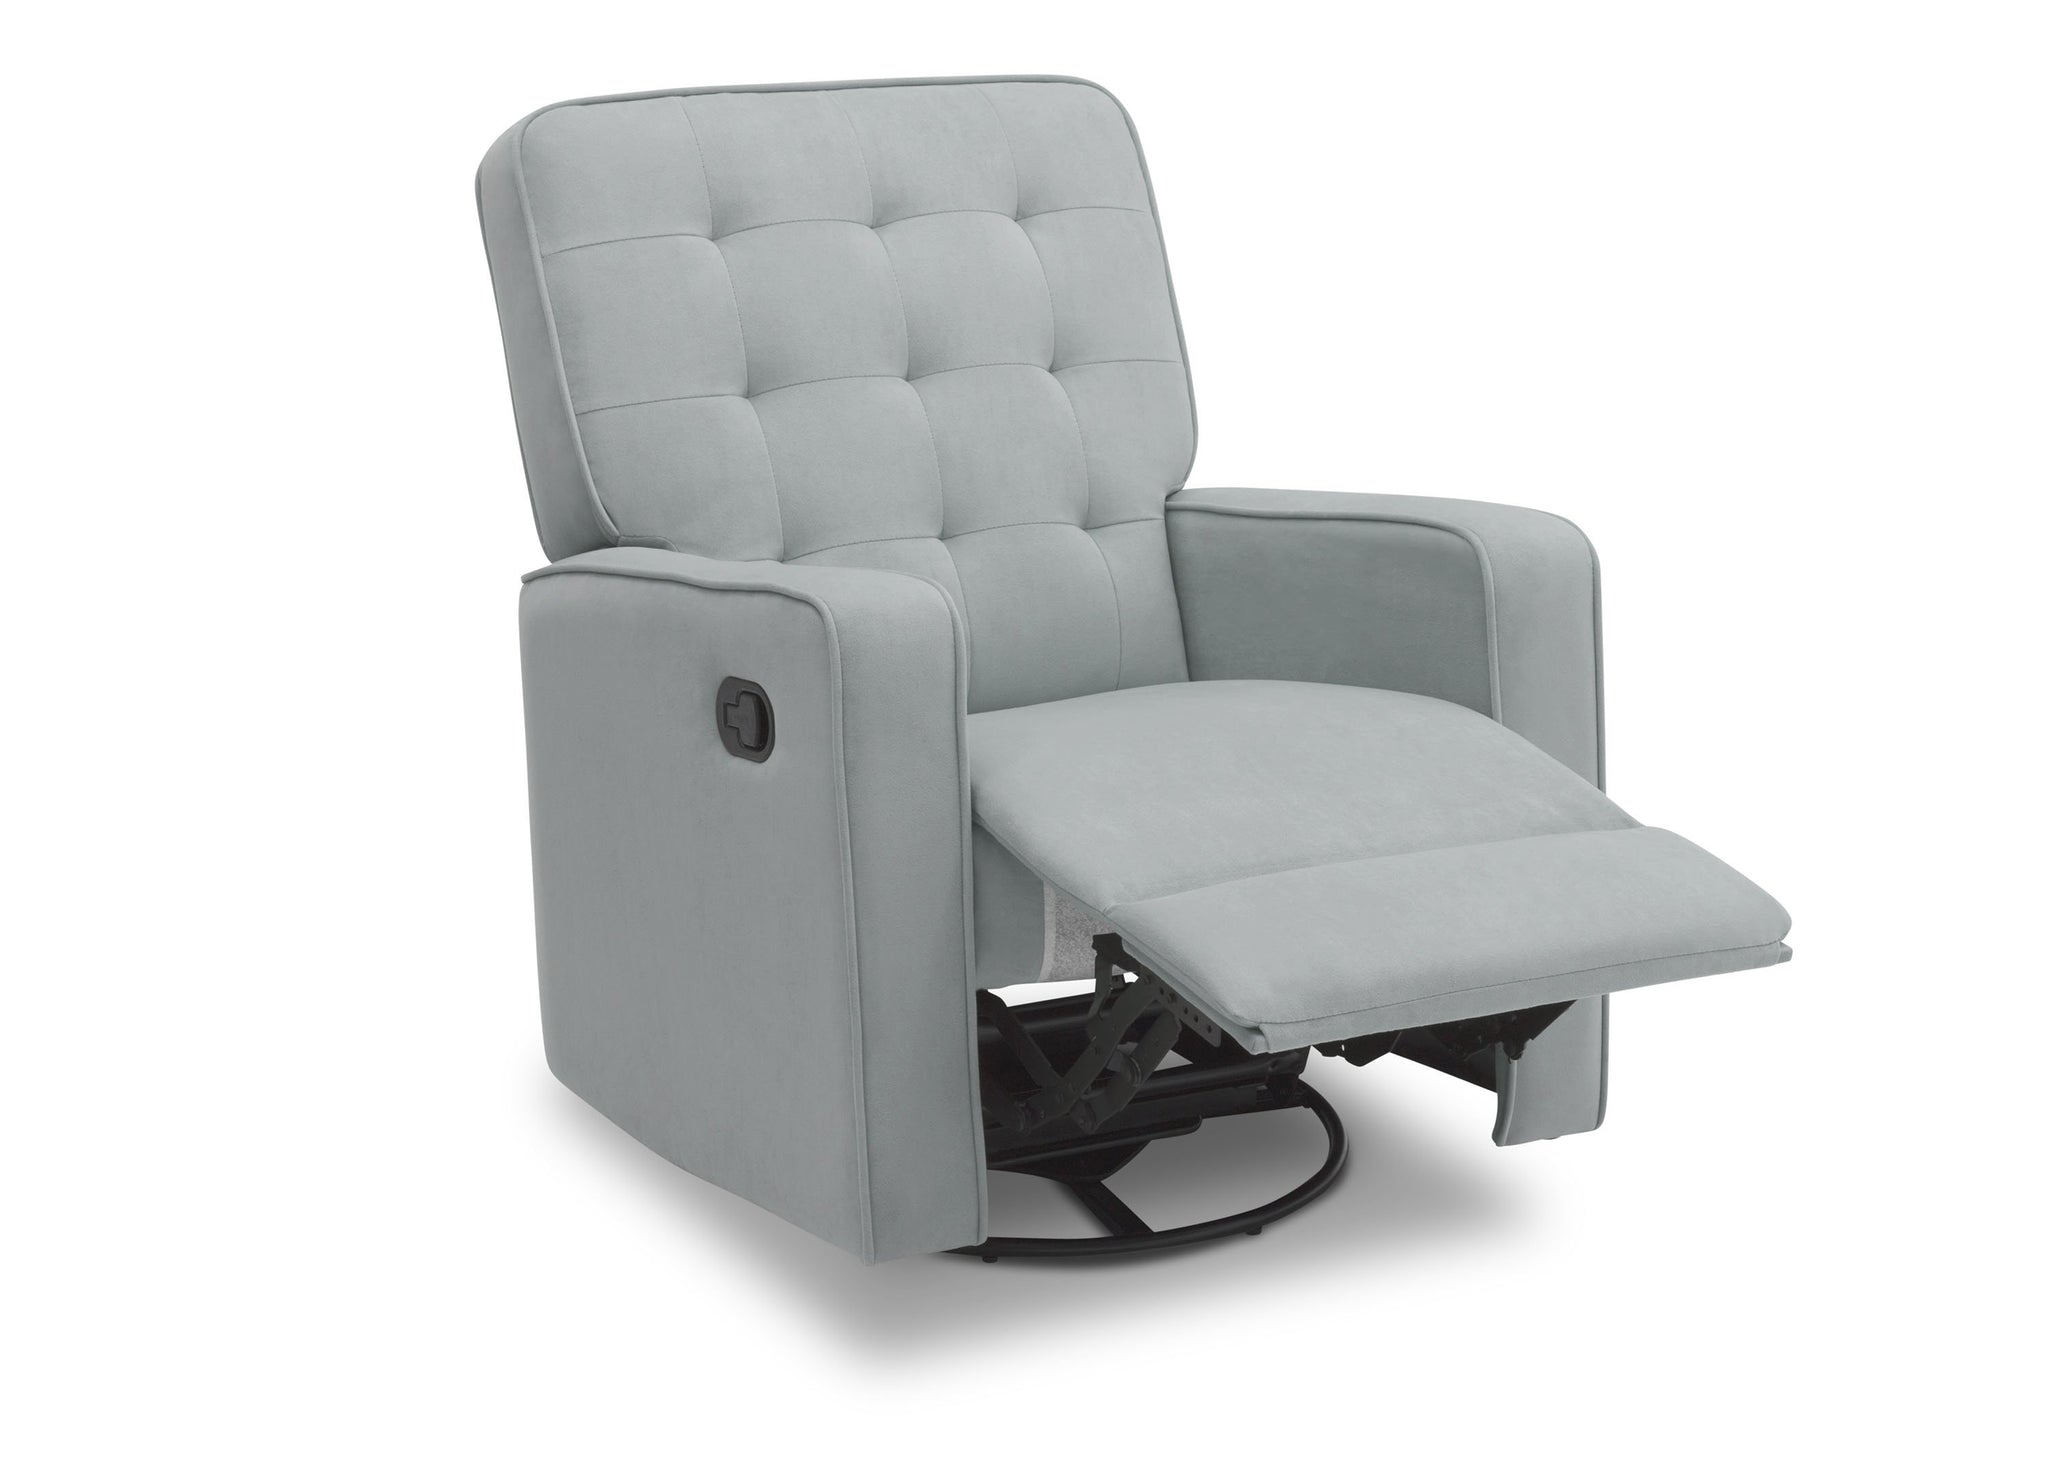 Delta Home Mist (934) Grant Glider Swivel Recliner, Right Reclined Silo View